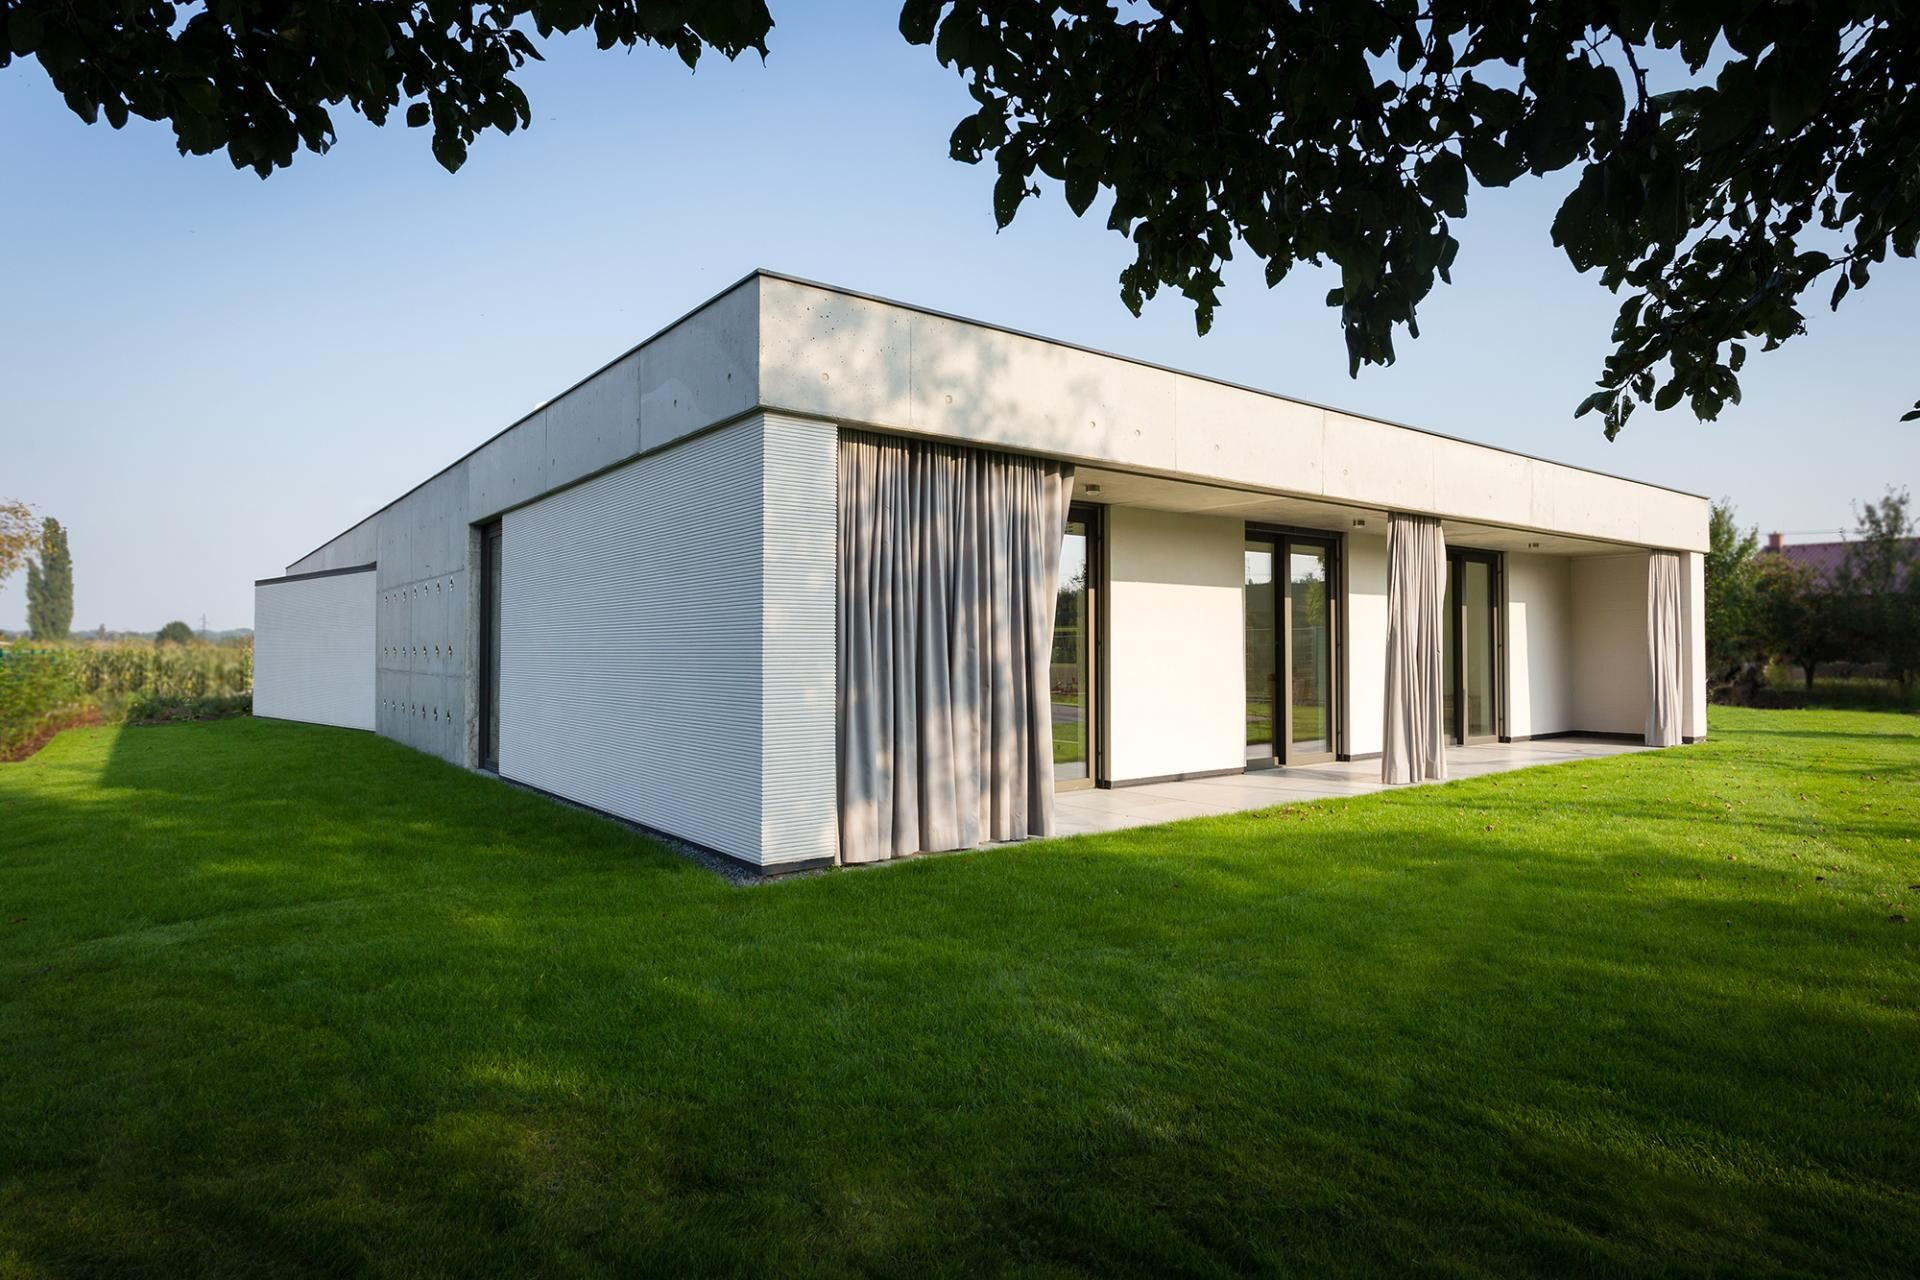 JVArchitekt designed this modern home in Olomouc-Slavonin, Czech Republic, for a family whose main request was for a high level of privacy. The project team developed this contemporary residence with three wings, which create a U-shaped floor plan that faces south, and an inner atrium.